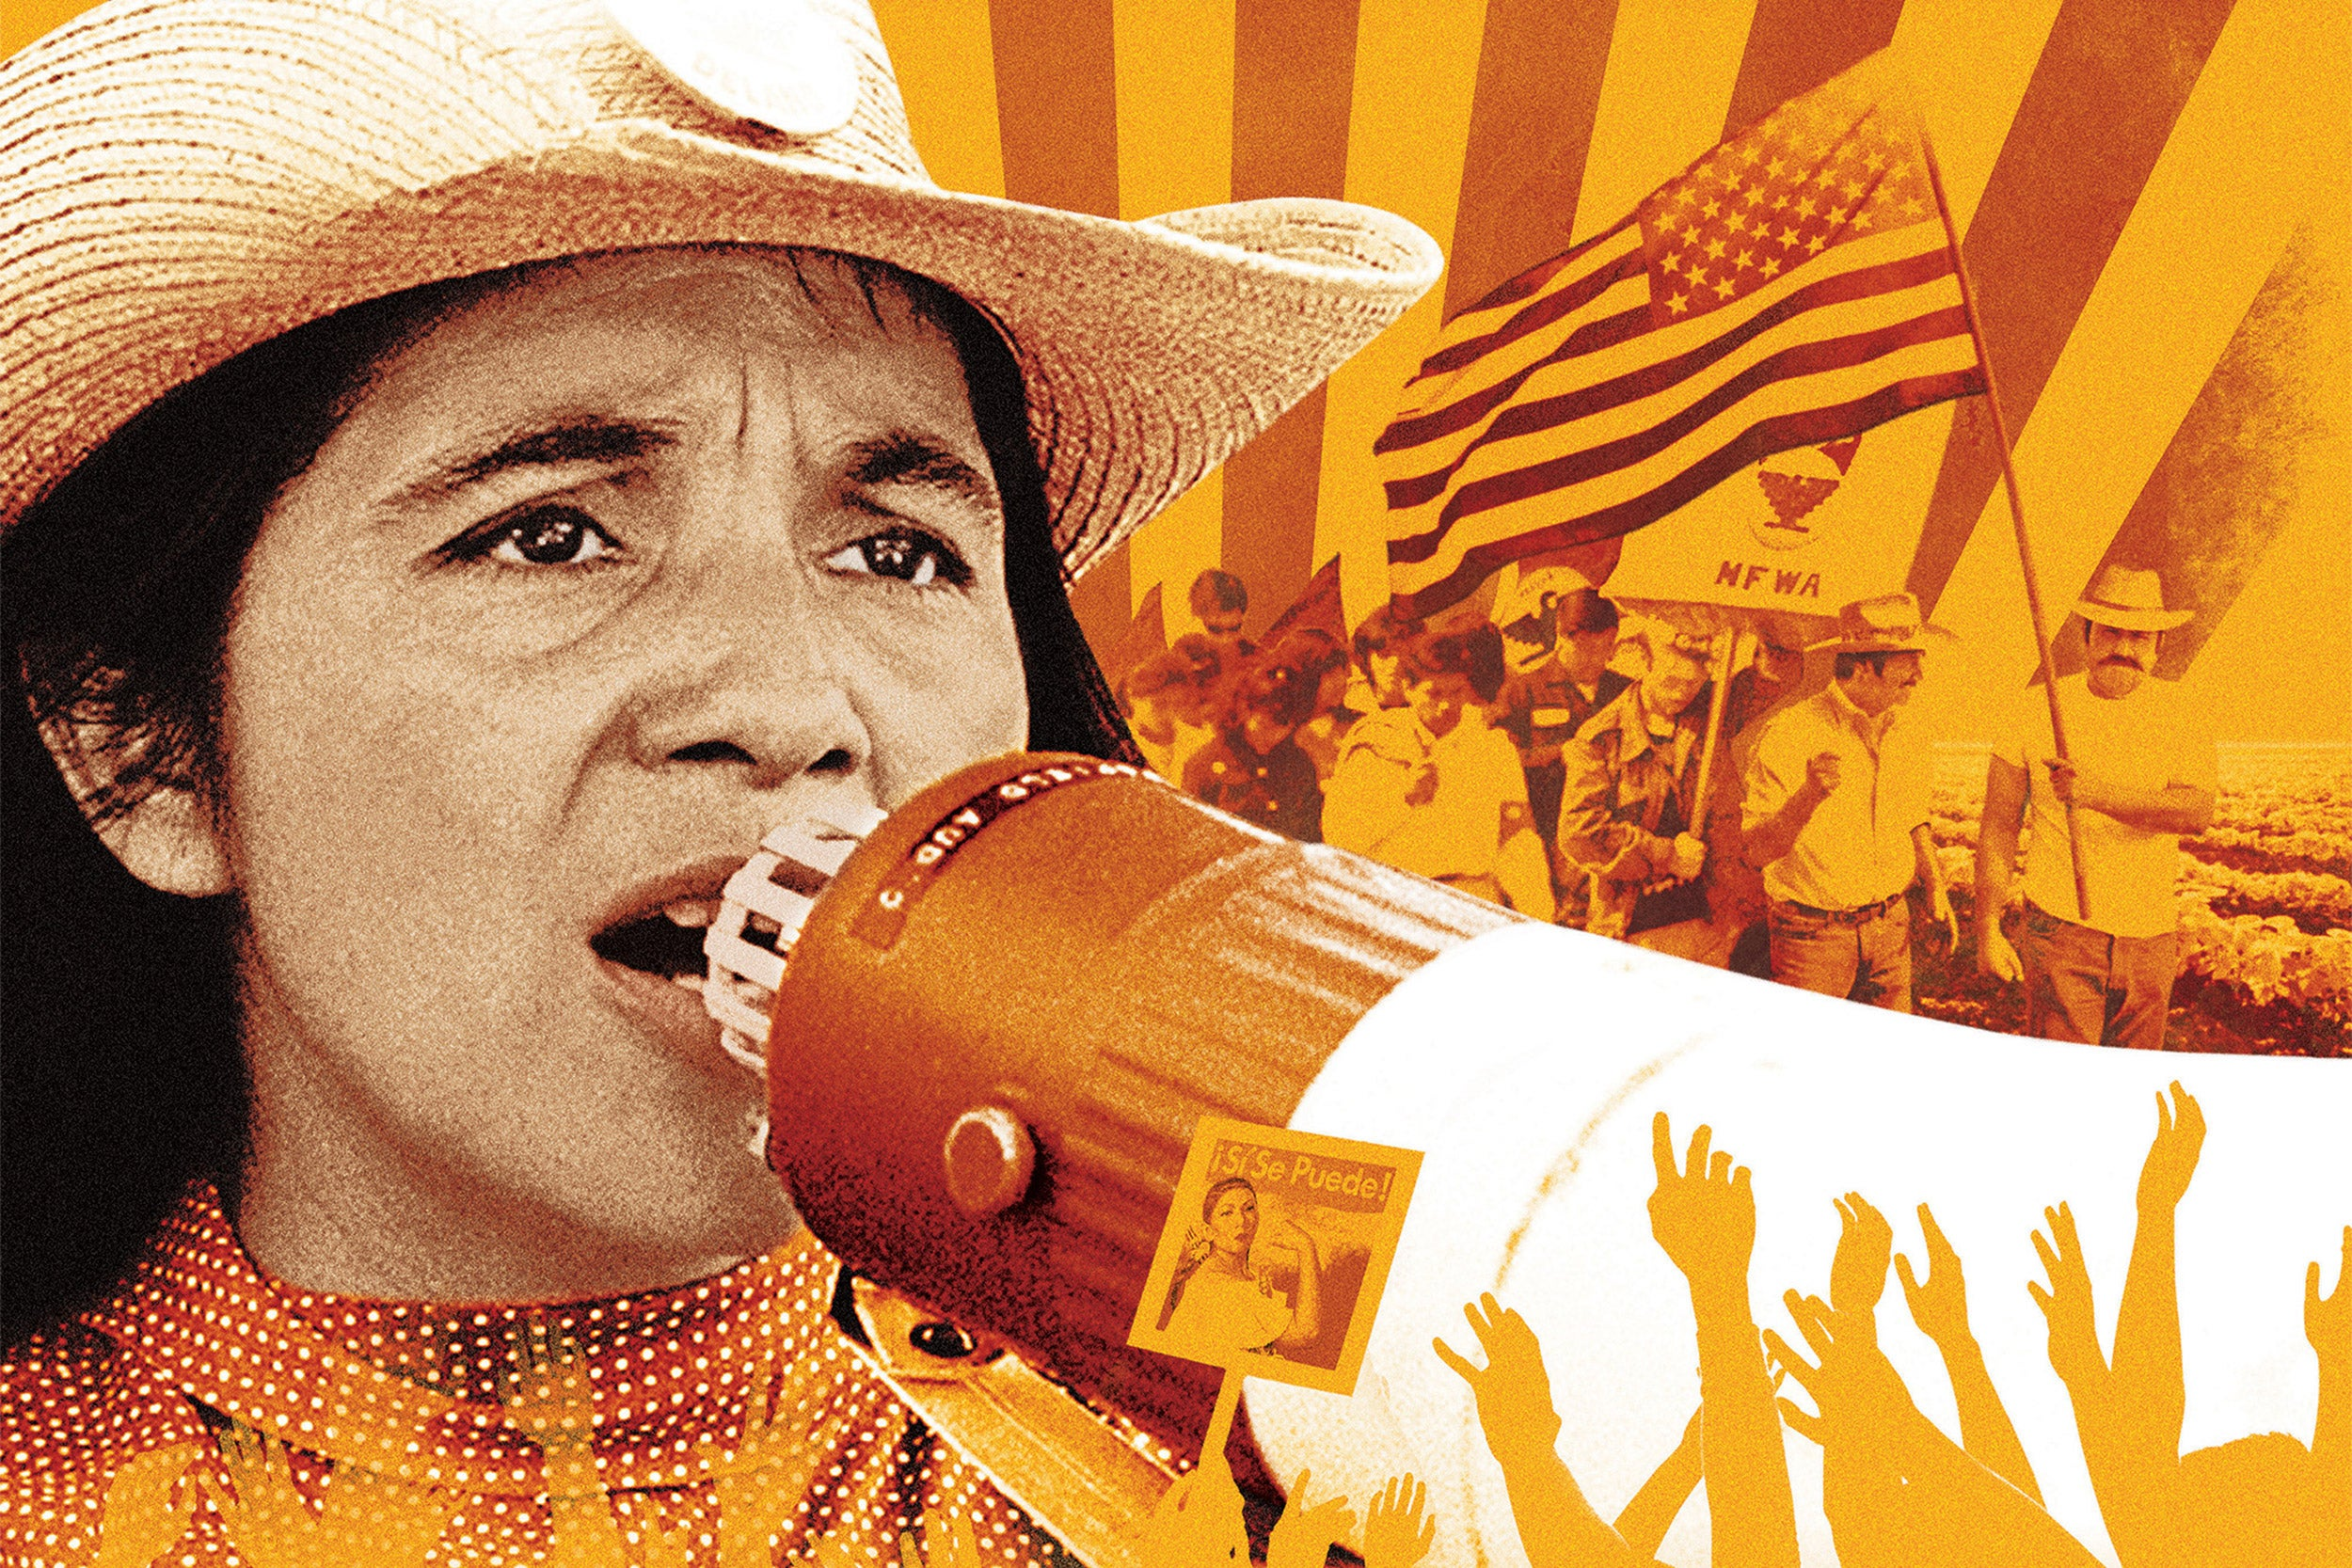 Raising 11 children while wrestling with gender bias, union defeat and victory,  Dolores Huerta was an equal partner in co-founding the first farm workers unions with Cesar Chavez. She will be honored with the Radcliffe Medal in May.